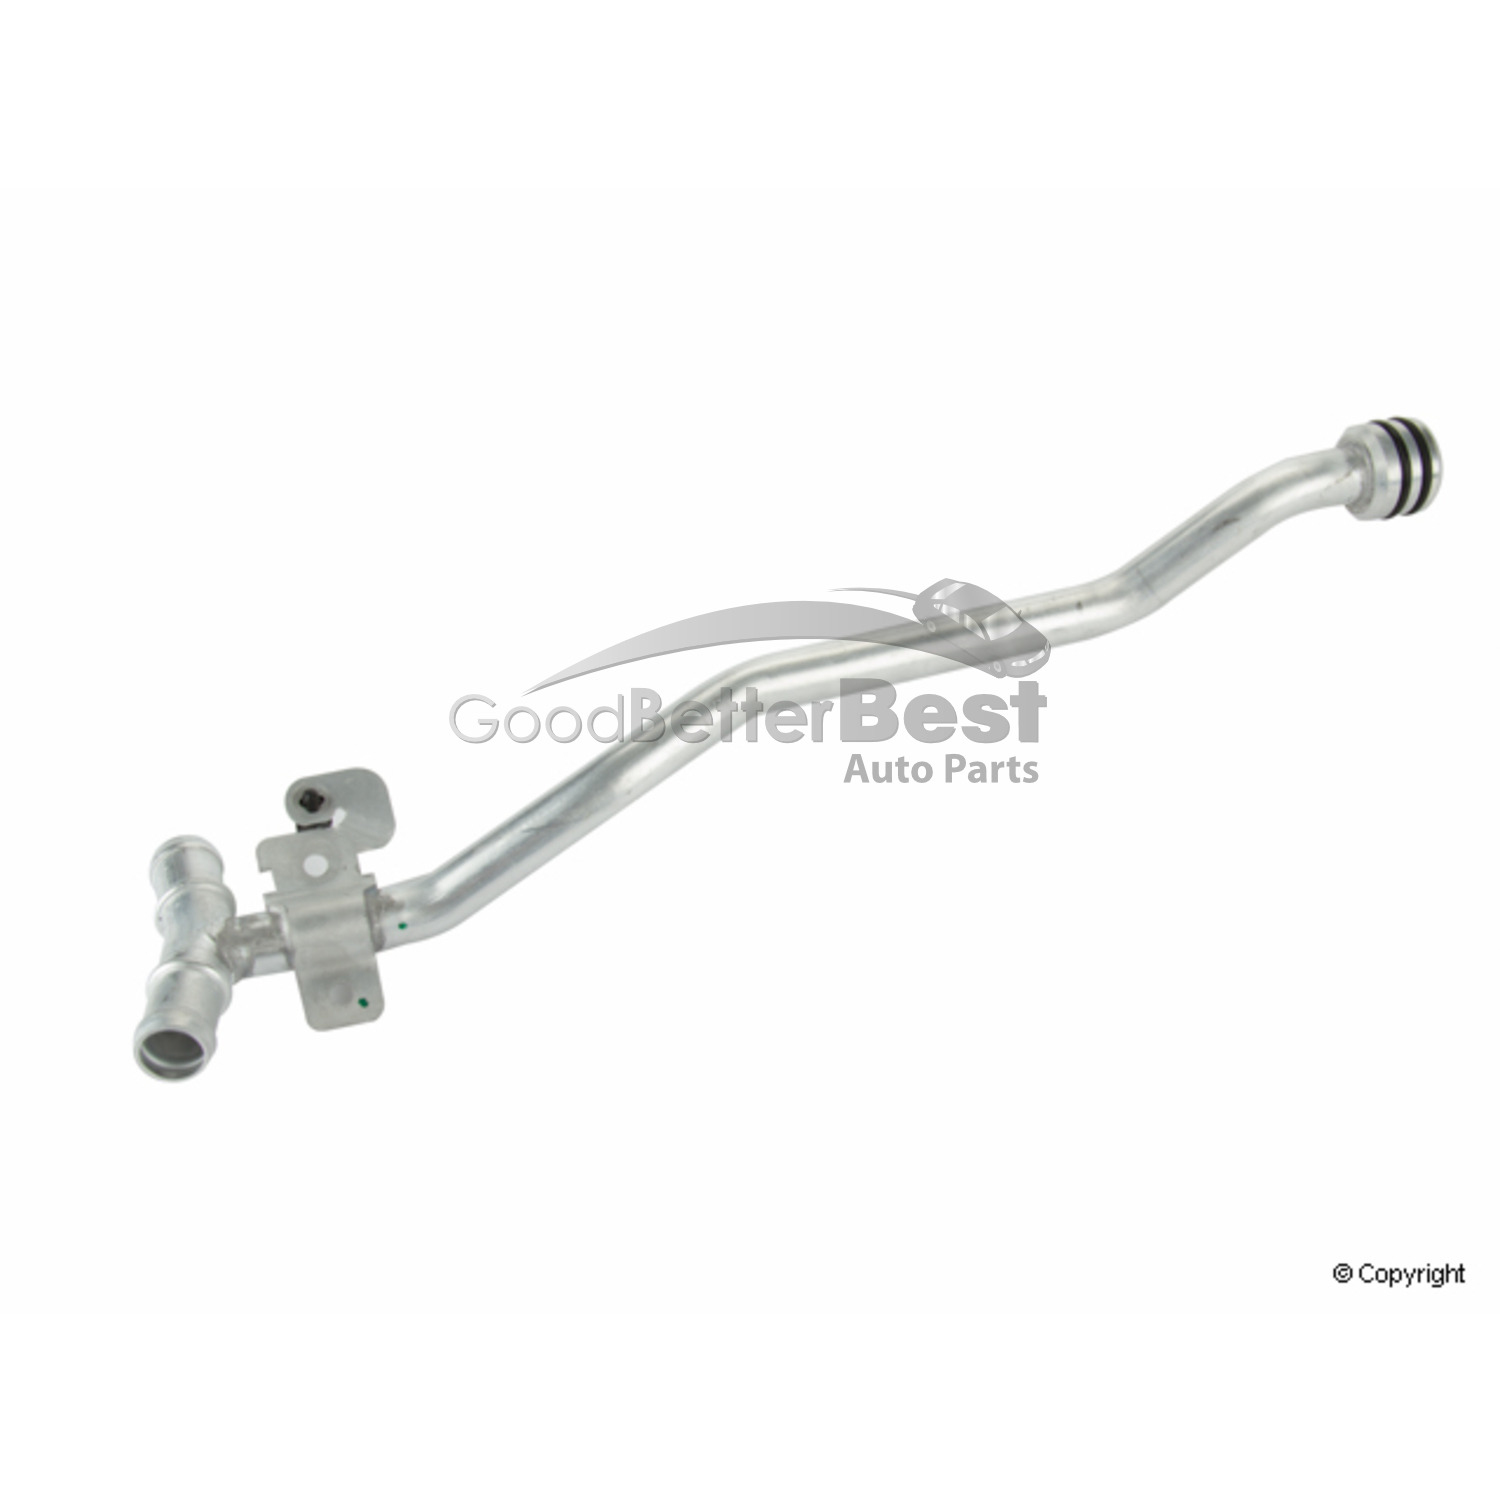 New Genuine Engine Coolant Pipe For Porsche